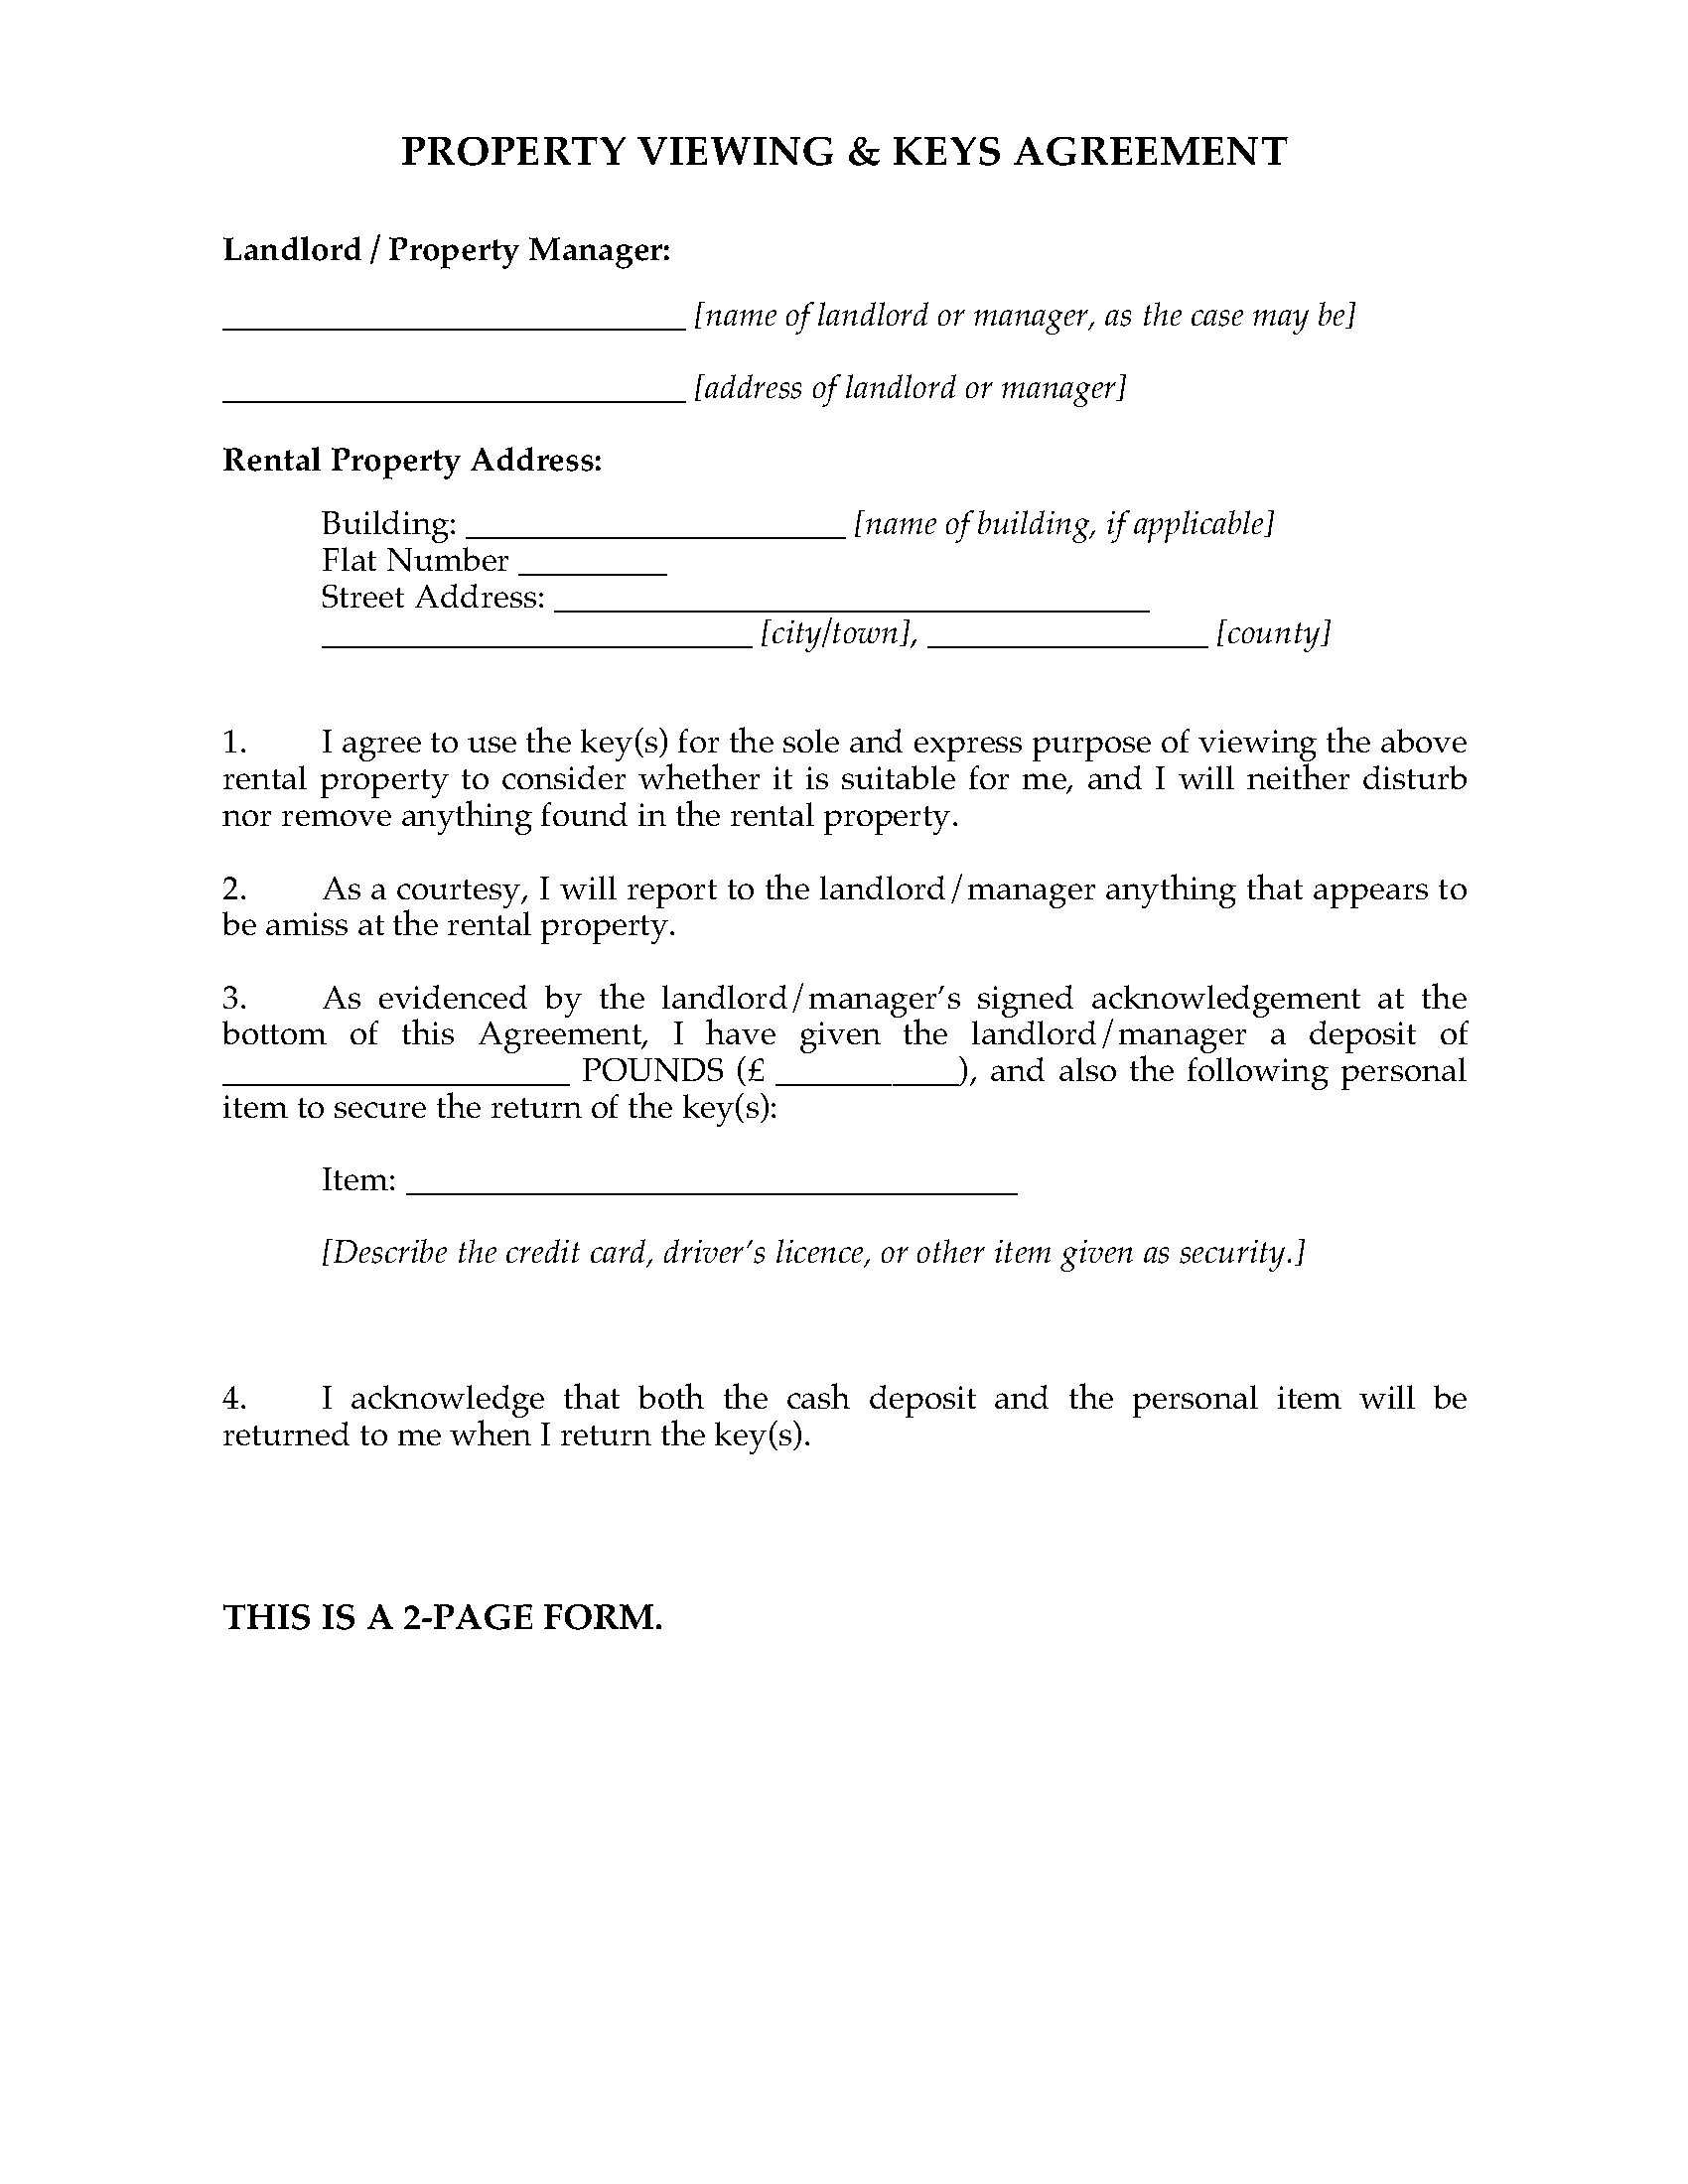 Uk rental property viewing agreement legal forms and business picture of uk rental property viewing agreement reheart Image collections